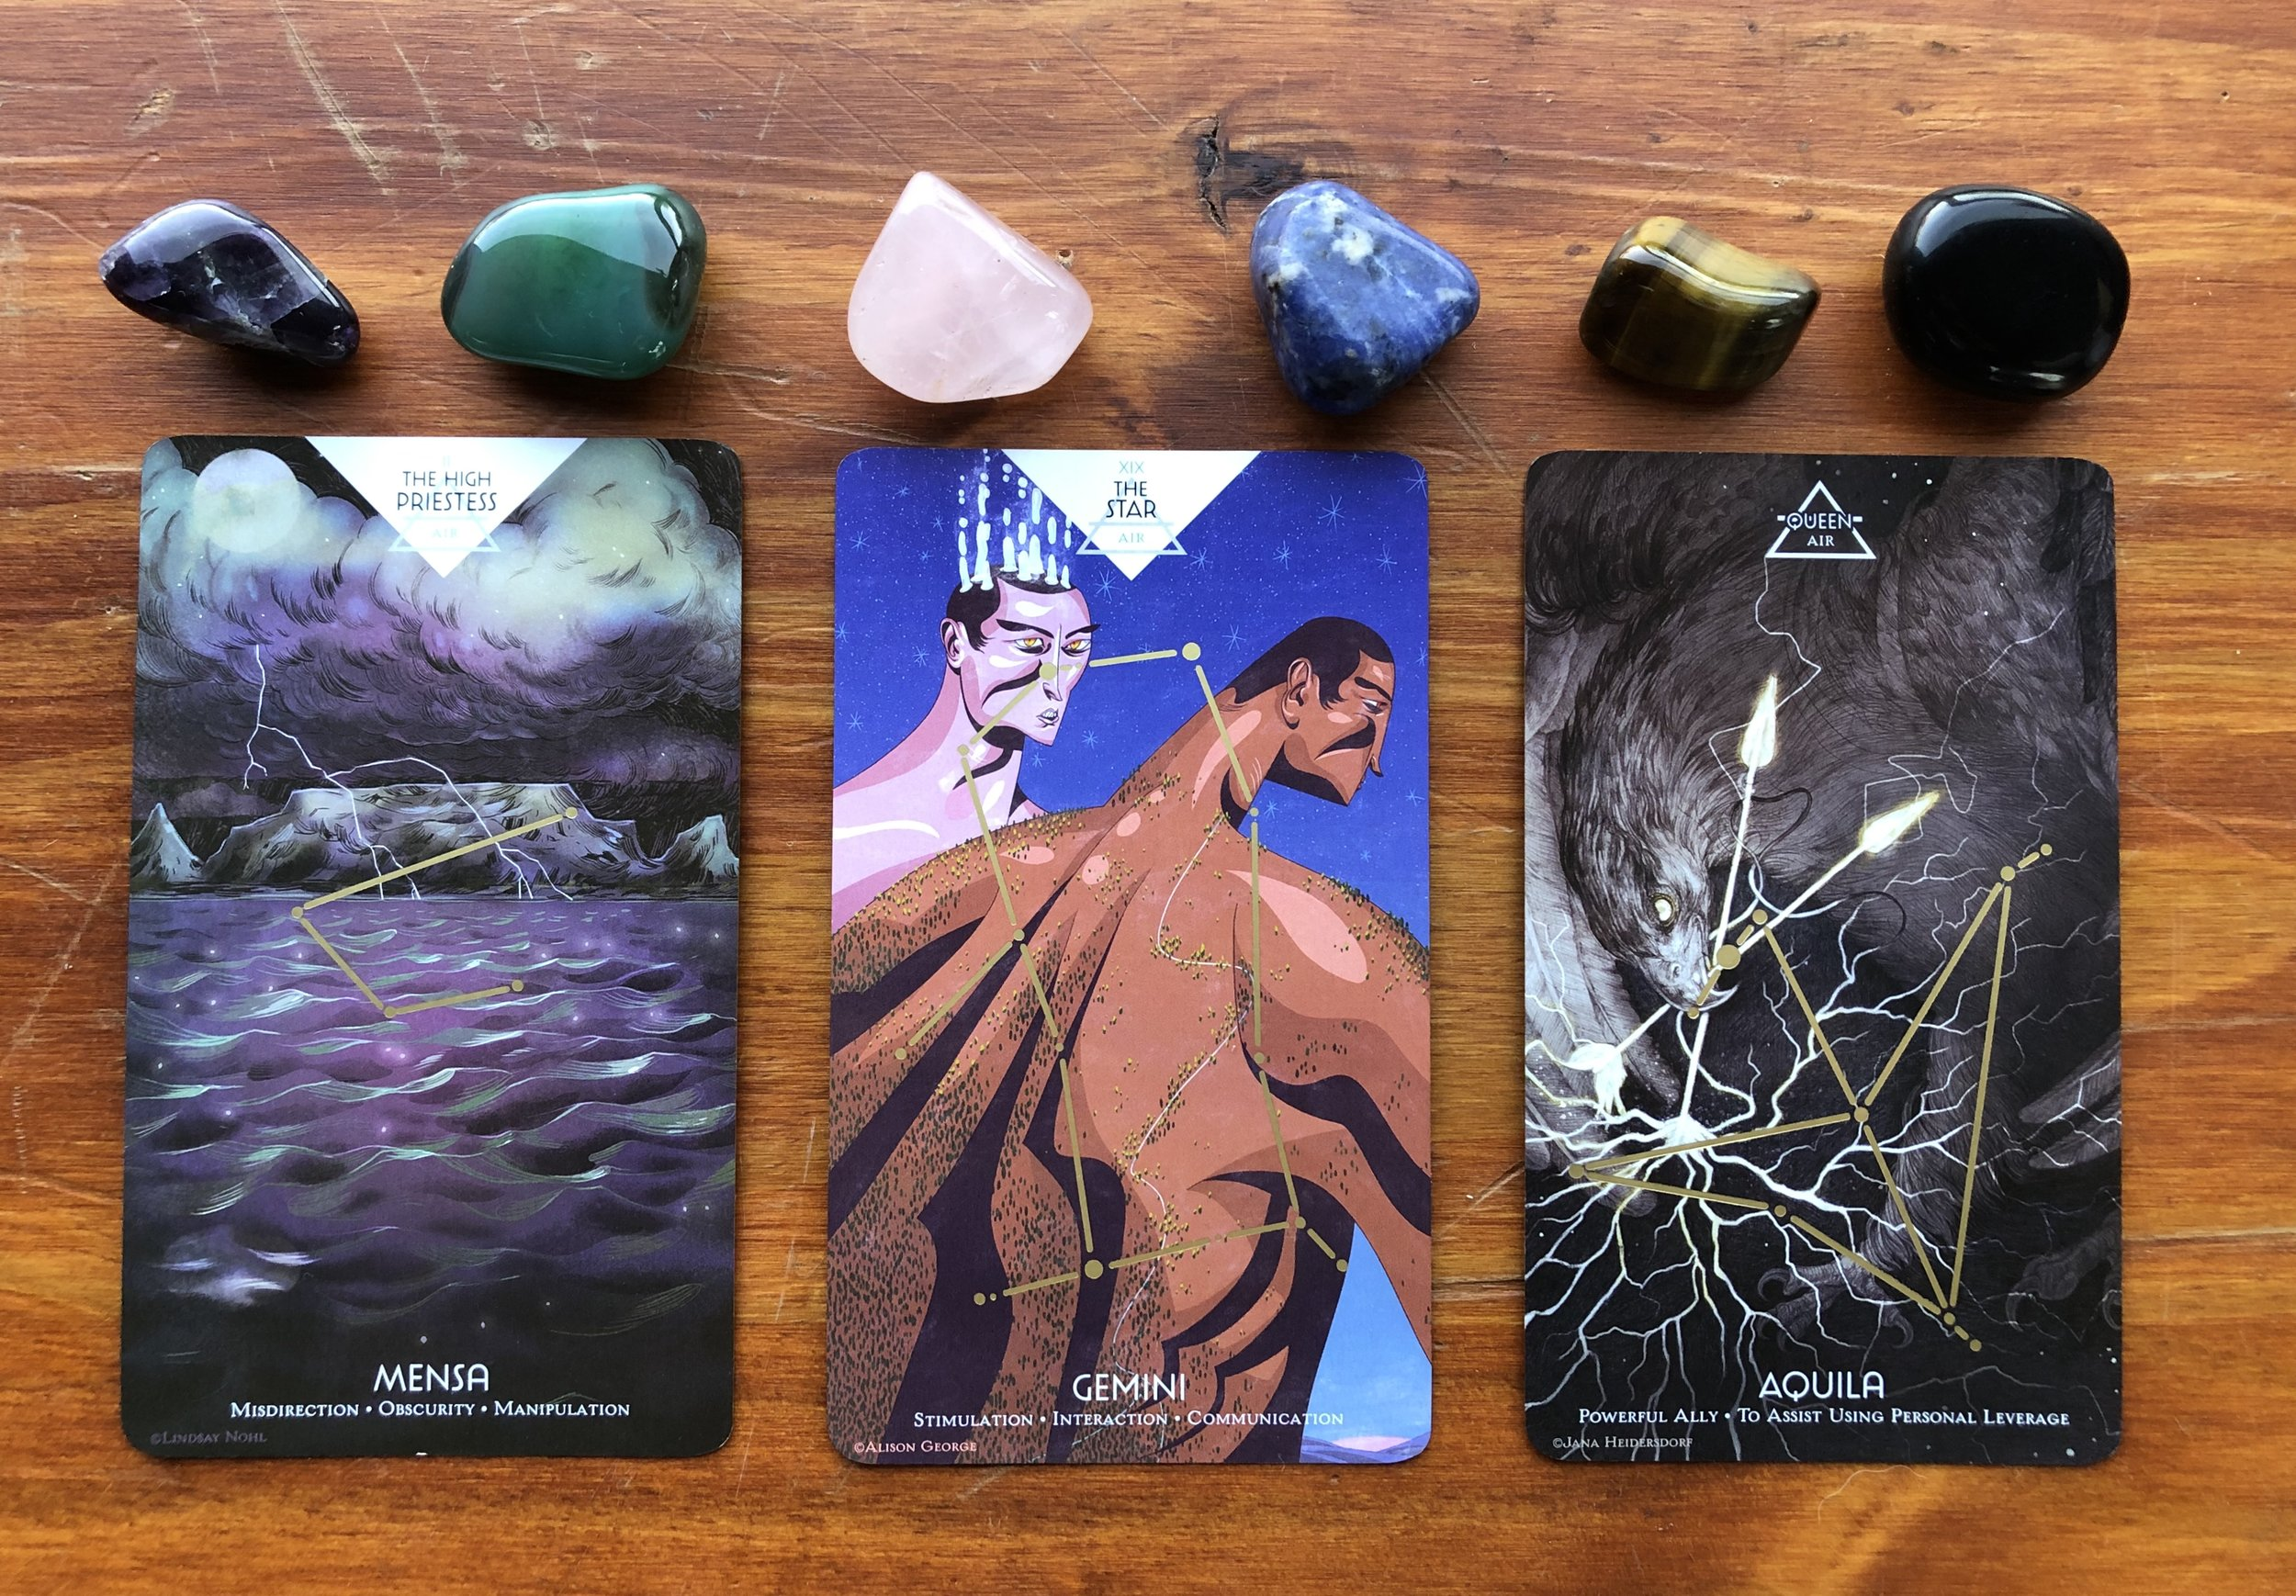 Cosmos Tarot from Light Grey Art Lab: High Priestess/Mensa, The Star/Gemini, Queen of Air/Aquila